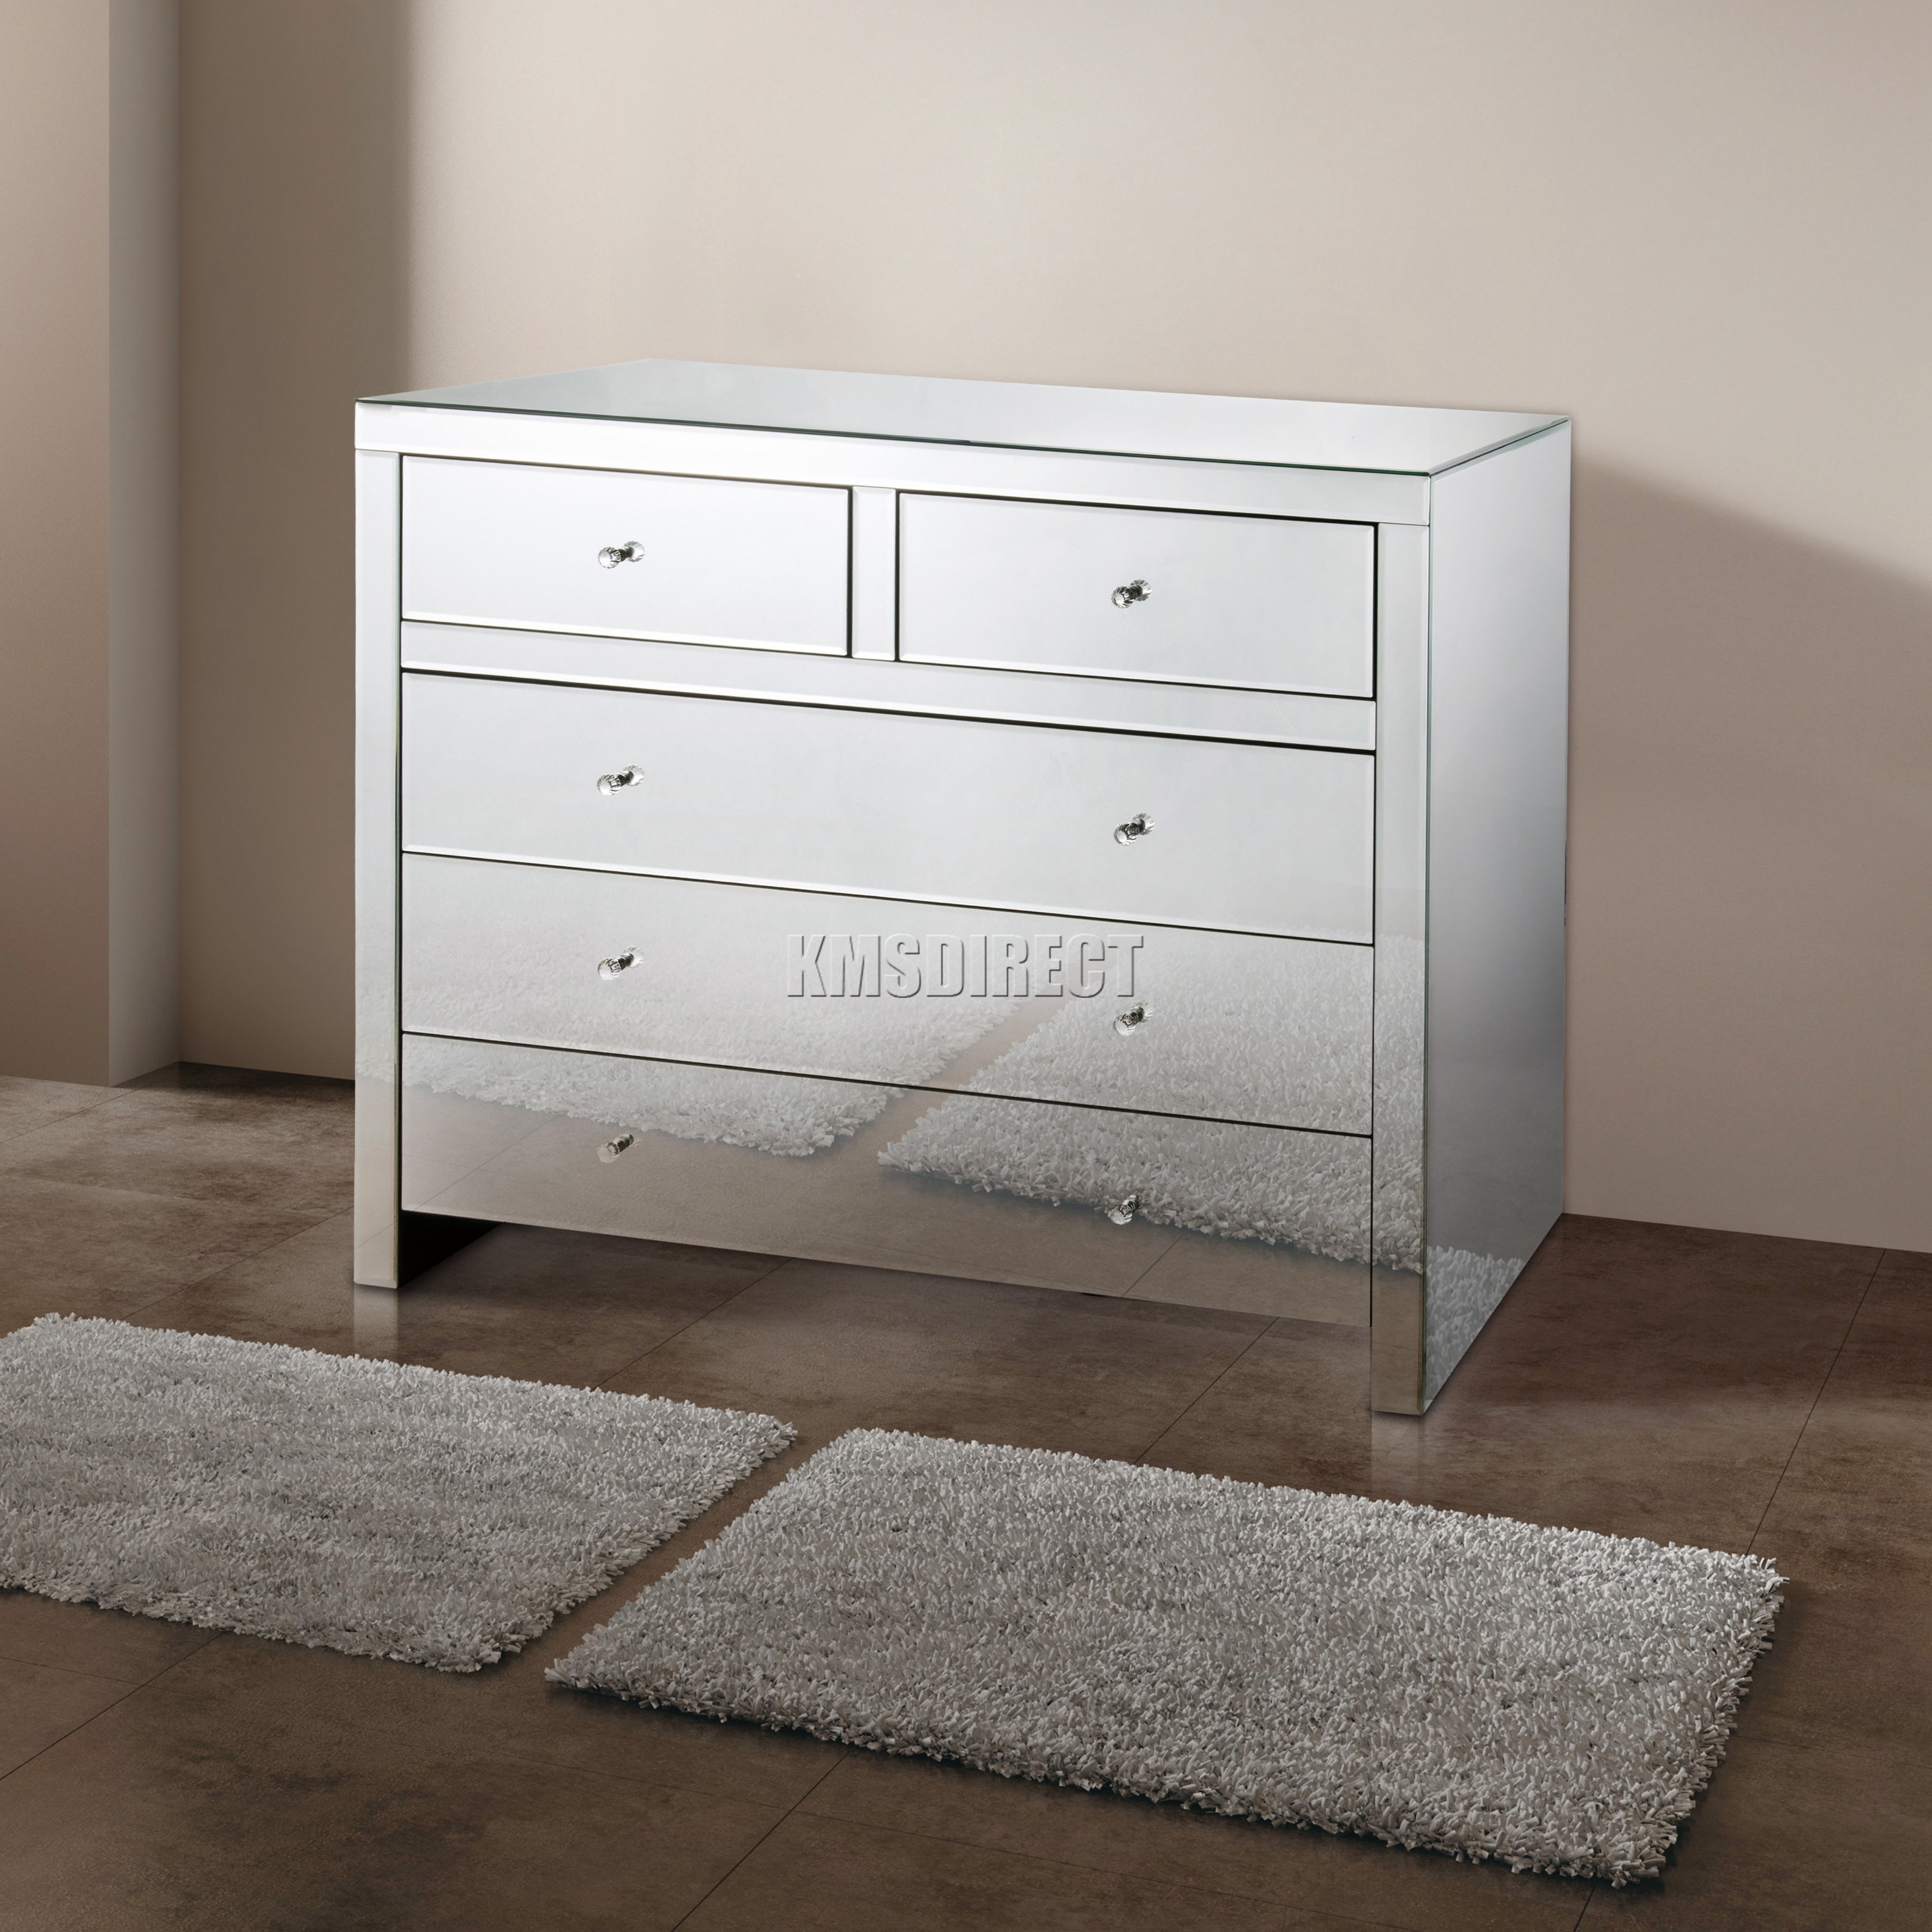 Sentinel SPARE REPAIR FoxHunter Mirrored Furniture Glass 2 3 Drawer Chest  Cabinet MC04